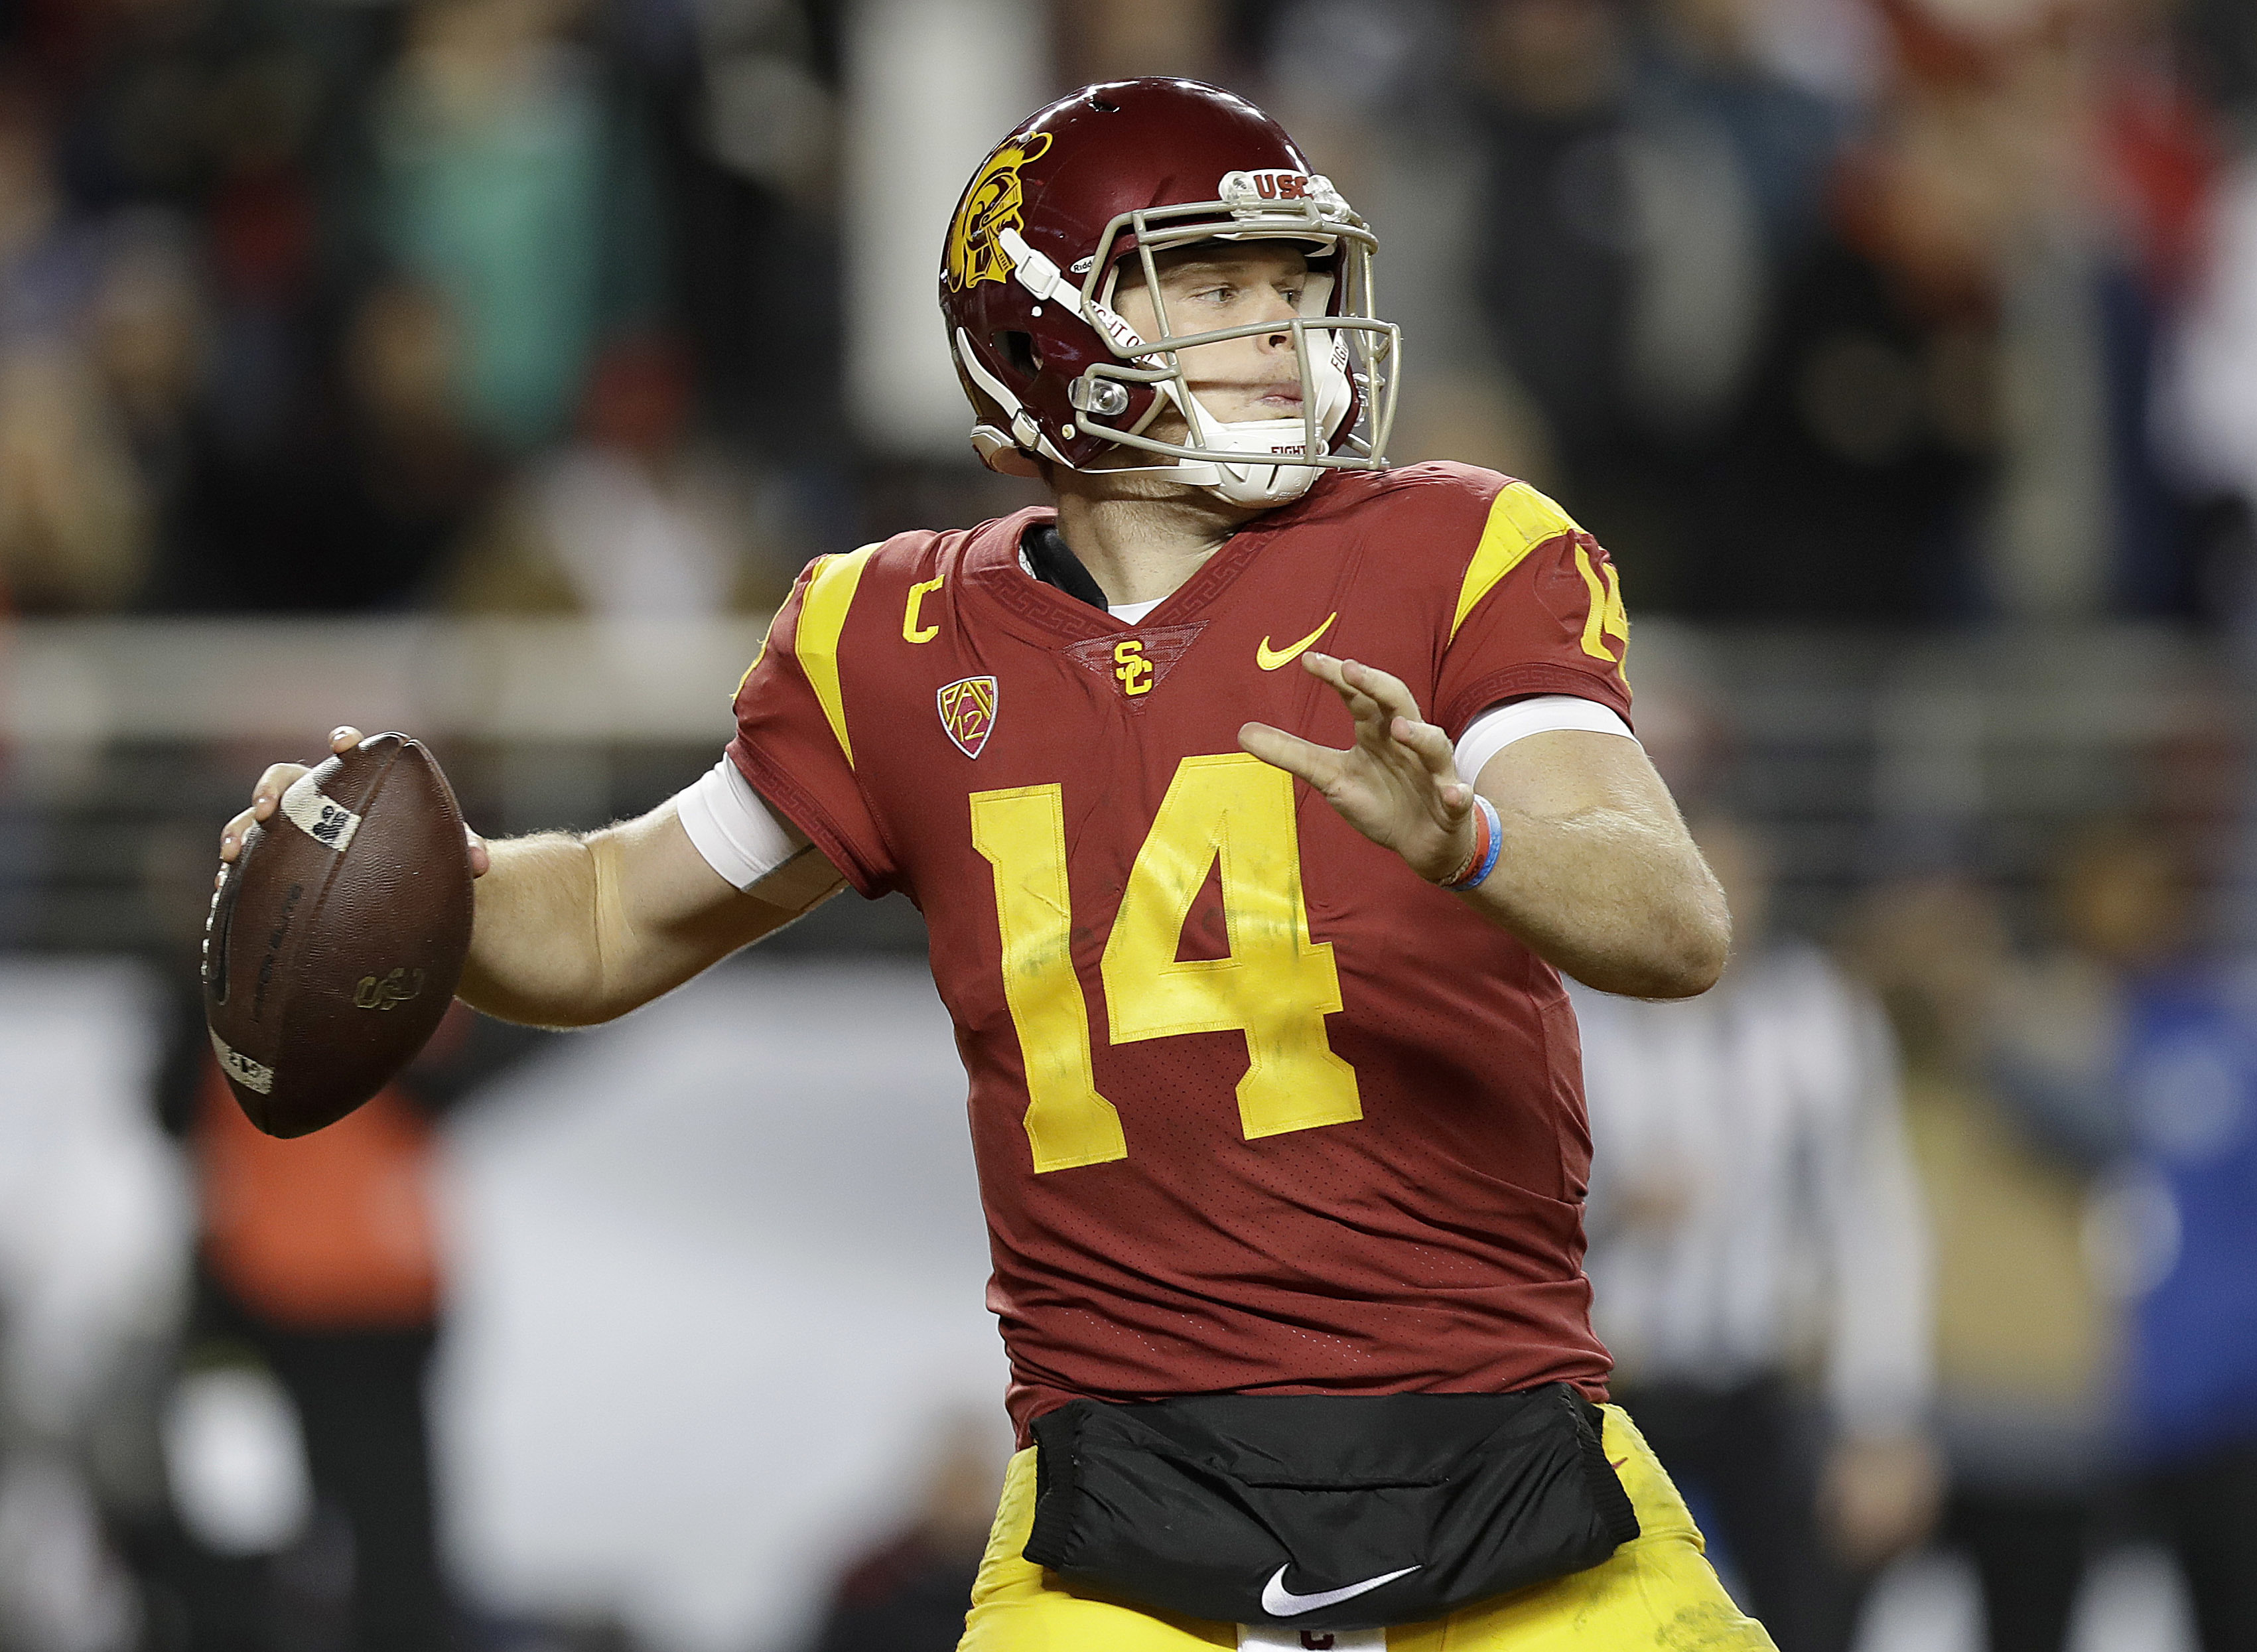 Sam Darnold passes during Southern Cal´s win over Stanford in the Pac-12 championship game in December 2017.